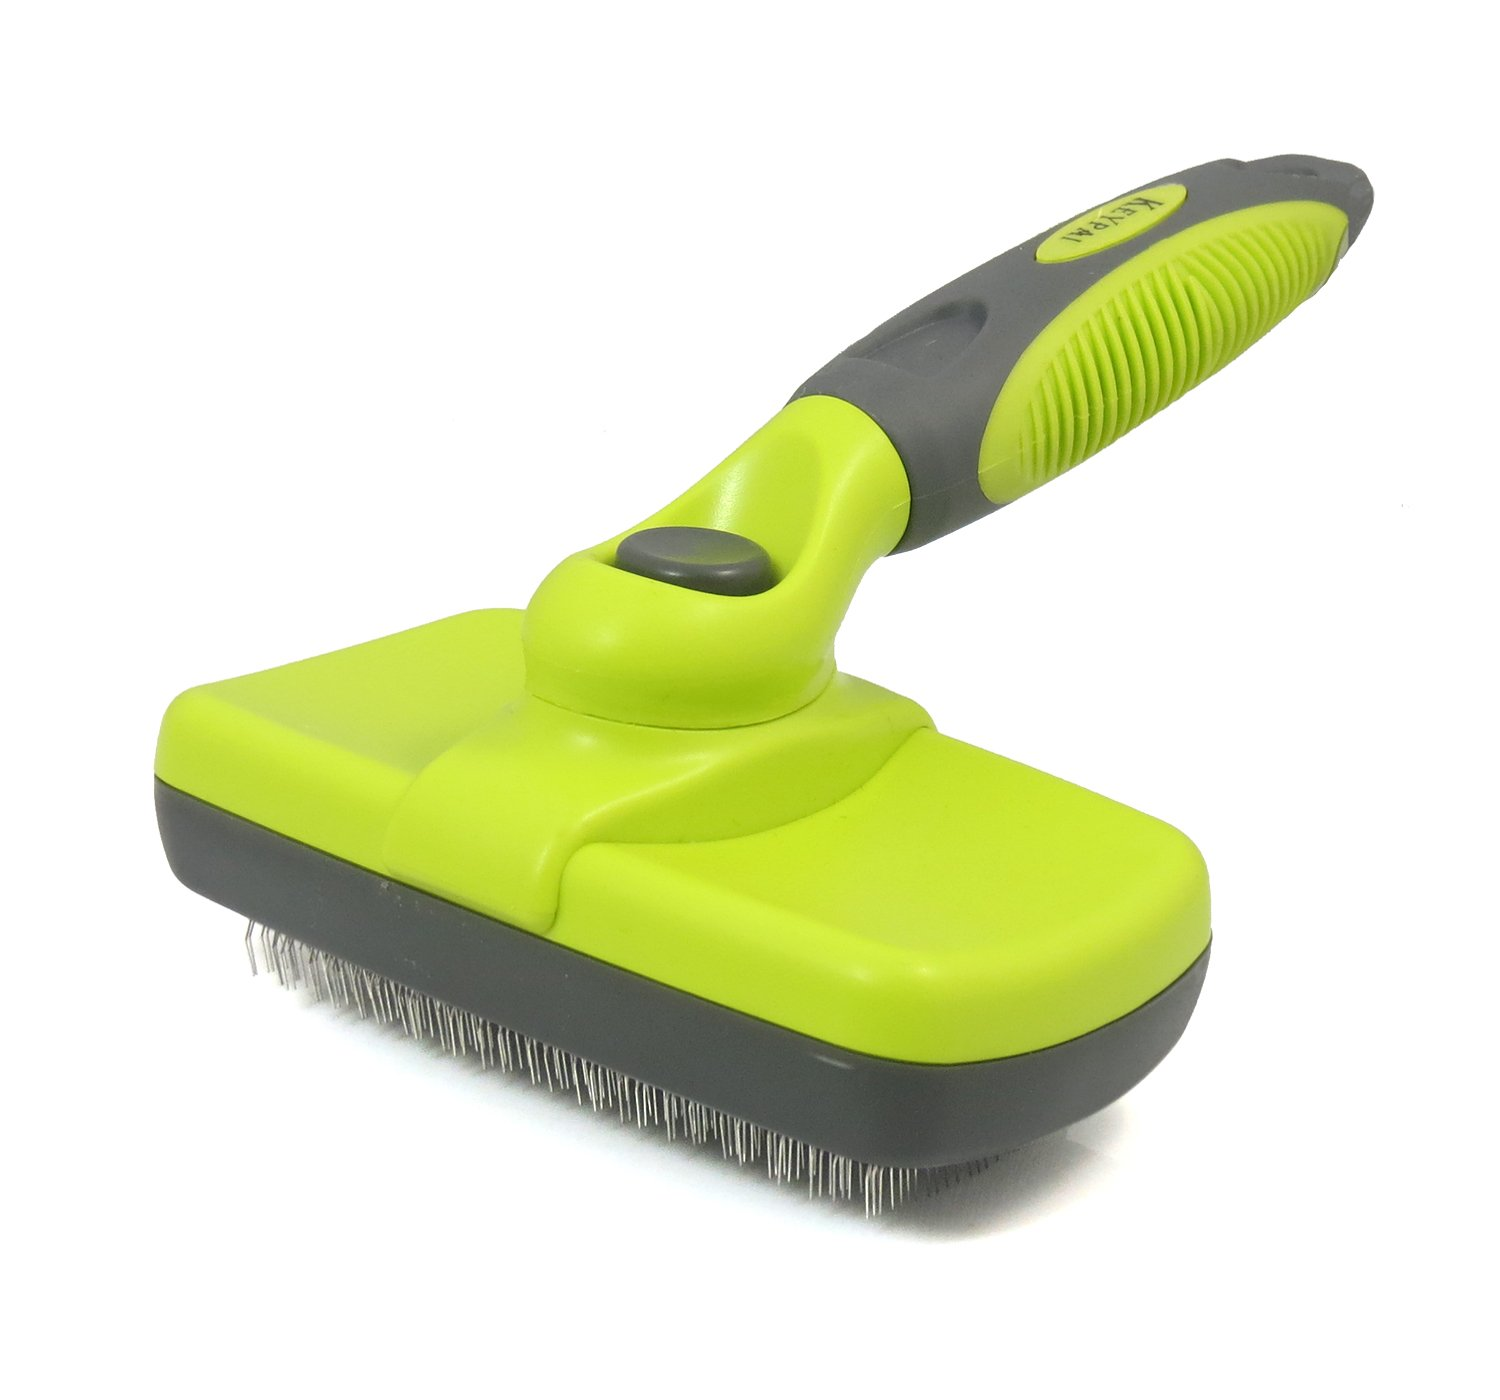 Keypai Self Cleaning Slicker Brush For Dogs and Cats Pet Grooming Tool Removes Mats Tangles Dead Undercoat Long & Short Hair Shedding